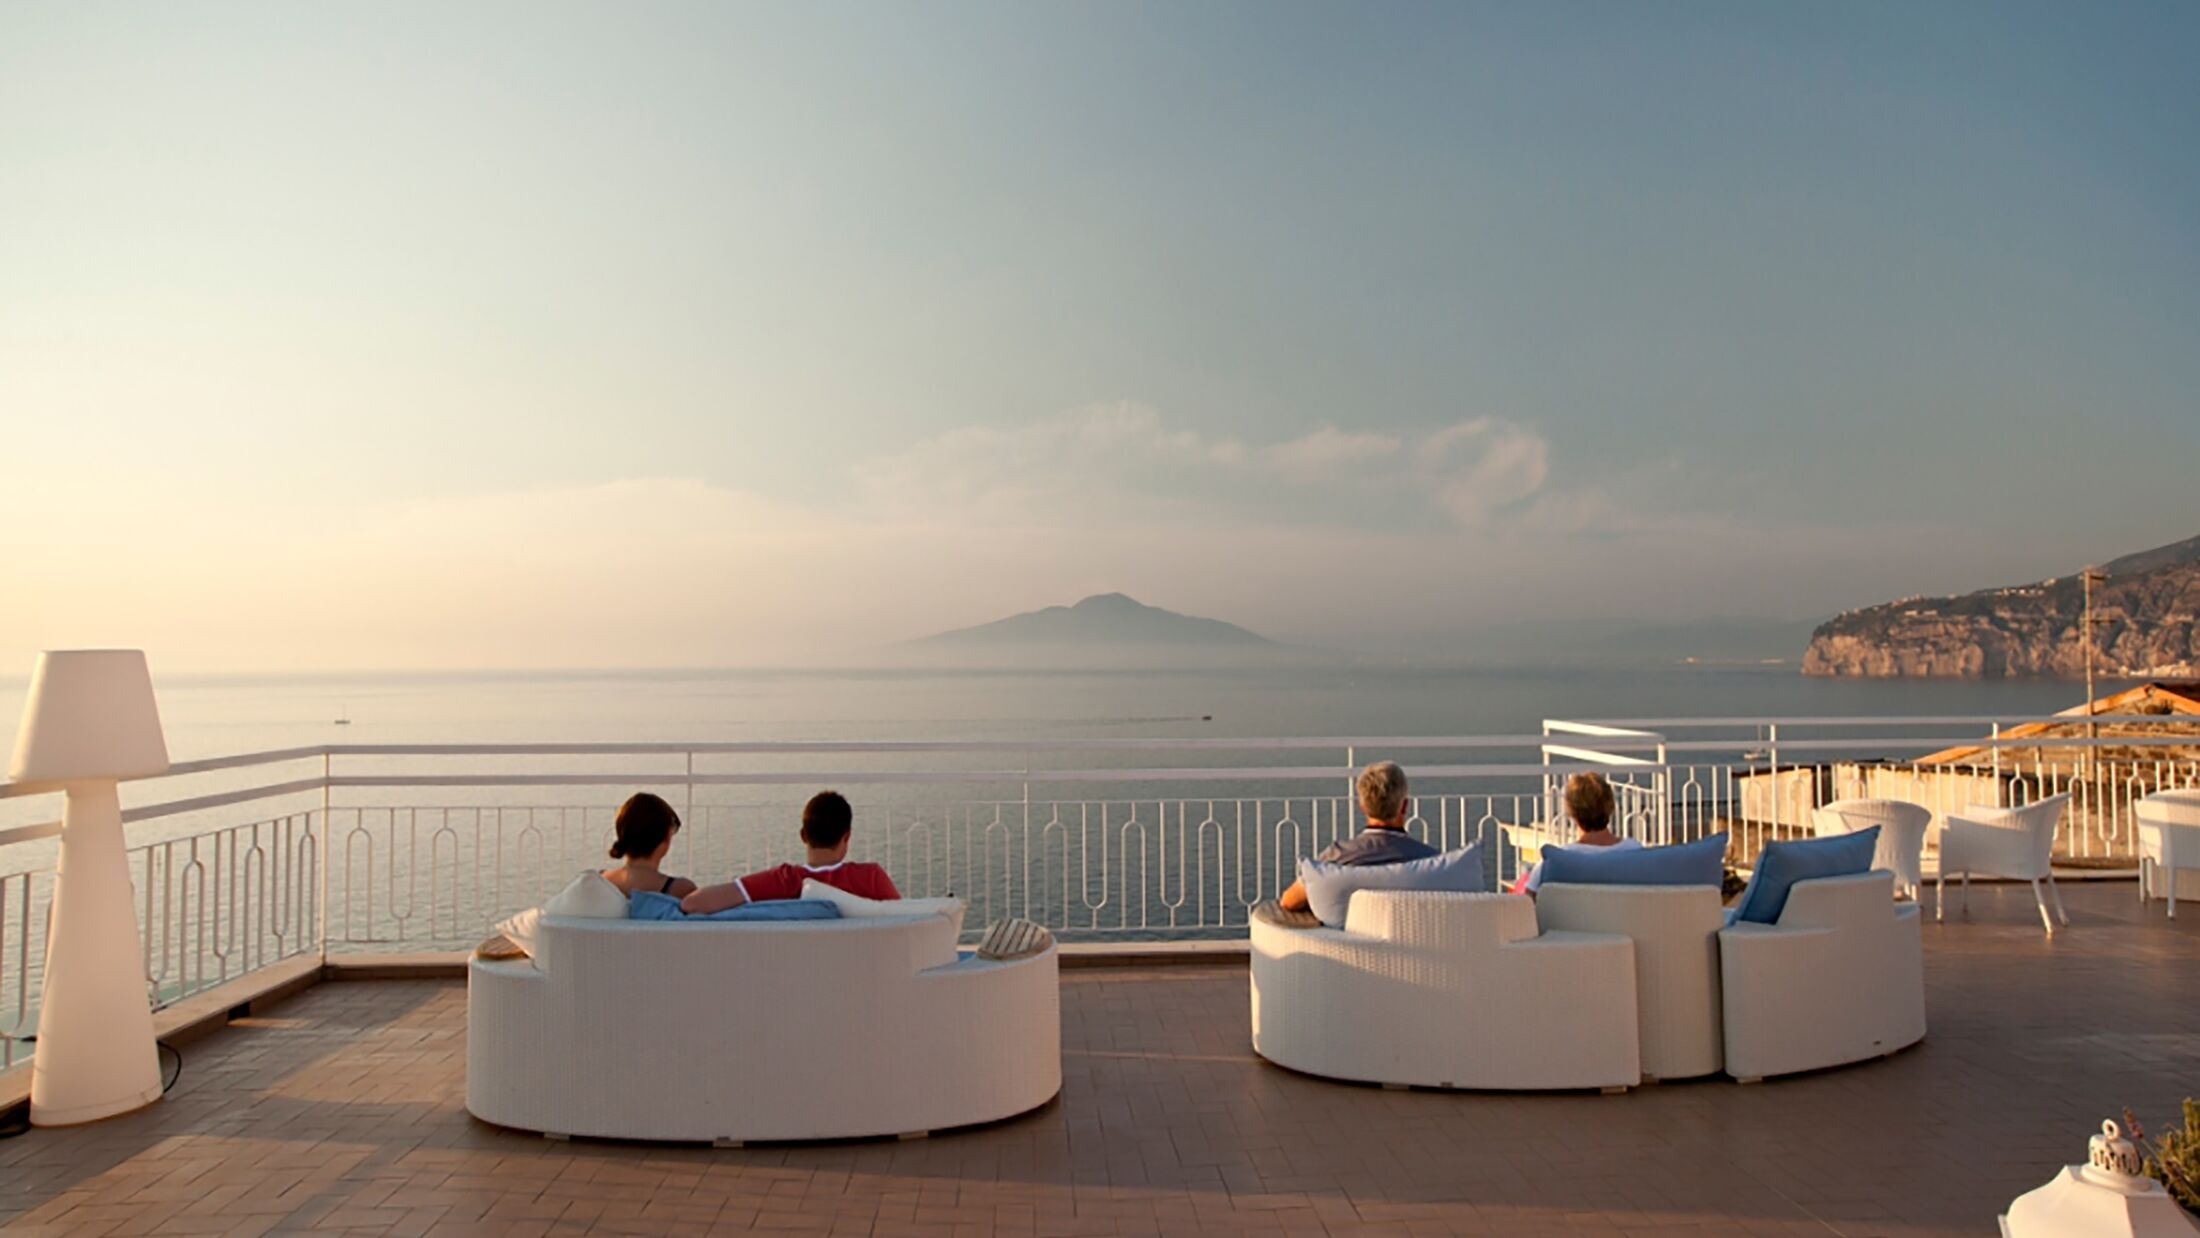 Regina-Sorrento-Rooftop-Bar-Sea-View-001-120217-Hybris